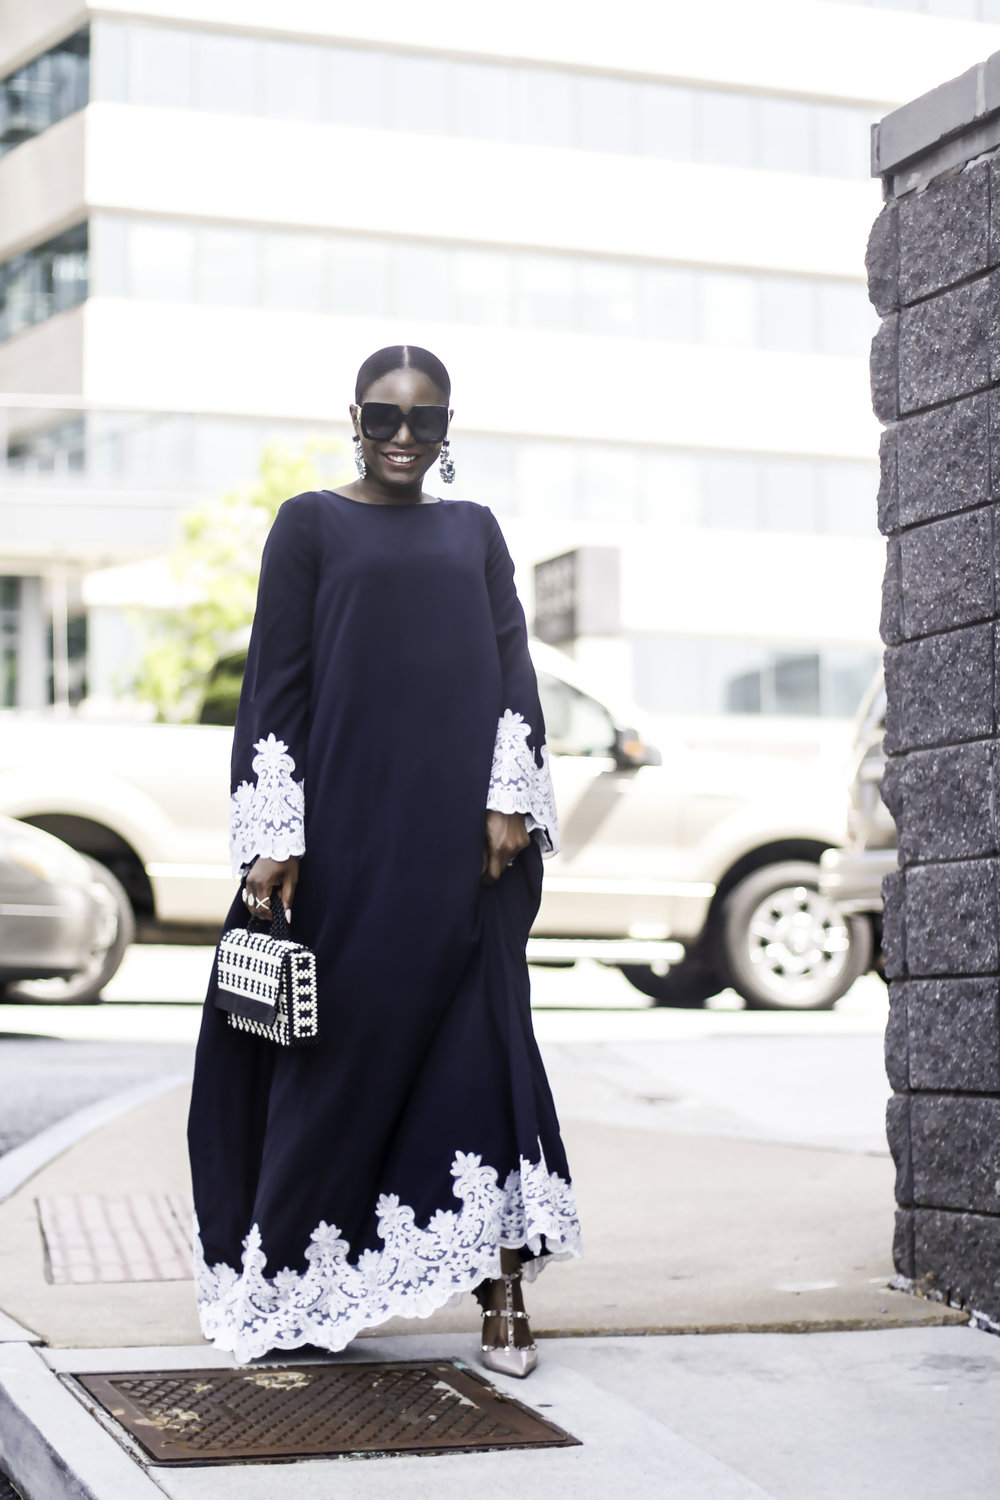 INFLUENCER WEARING CAFTAN.jpg